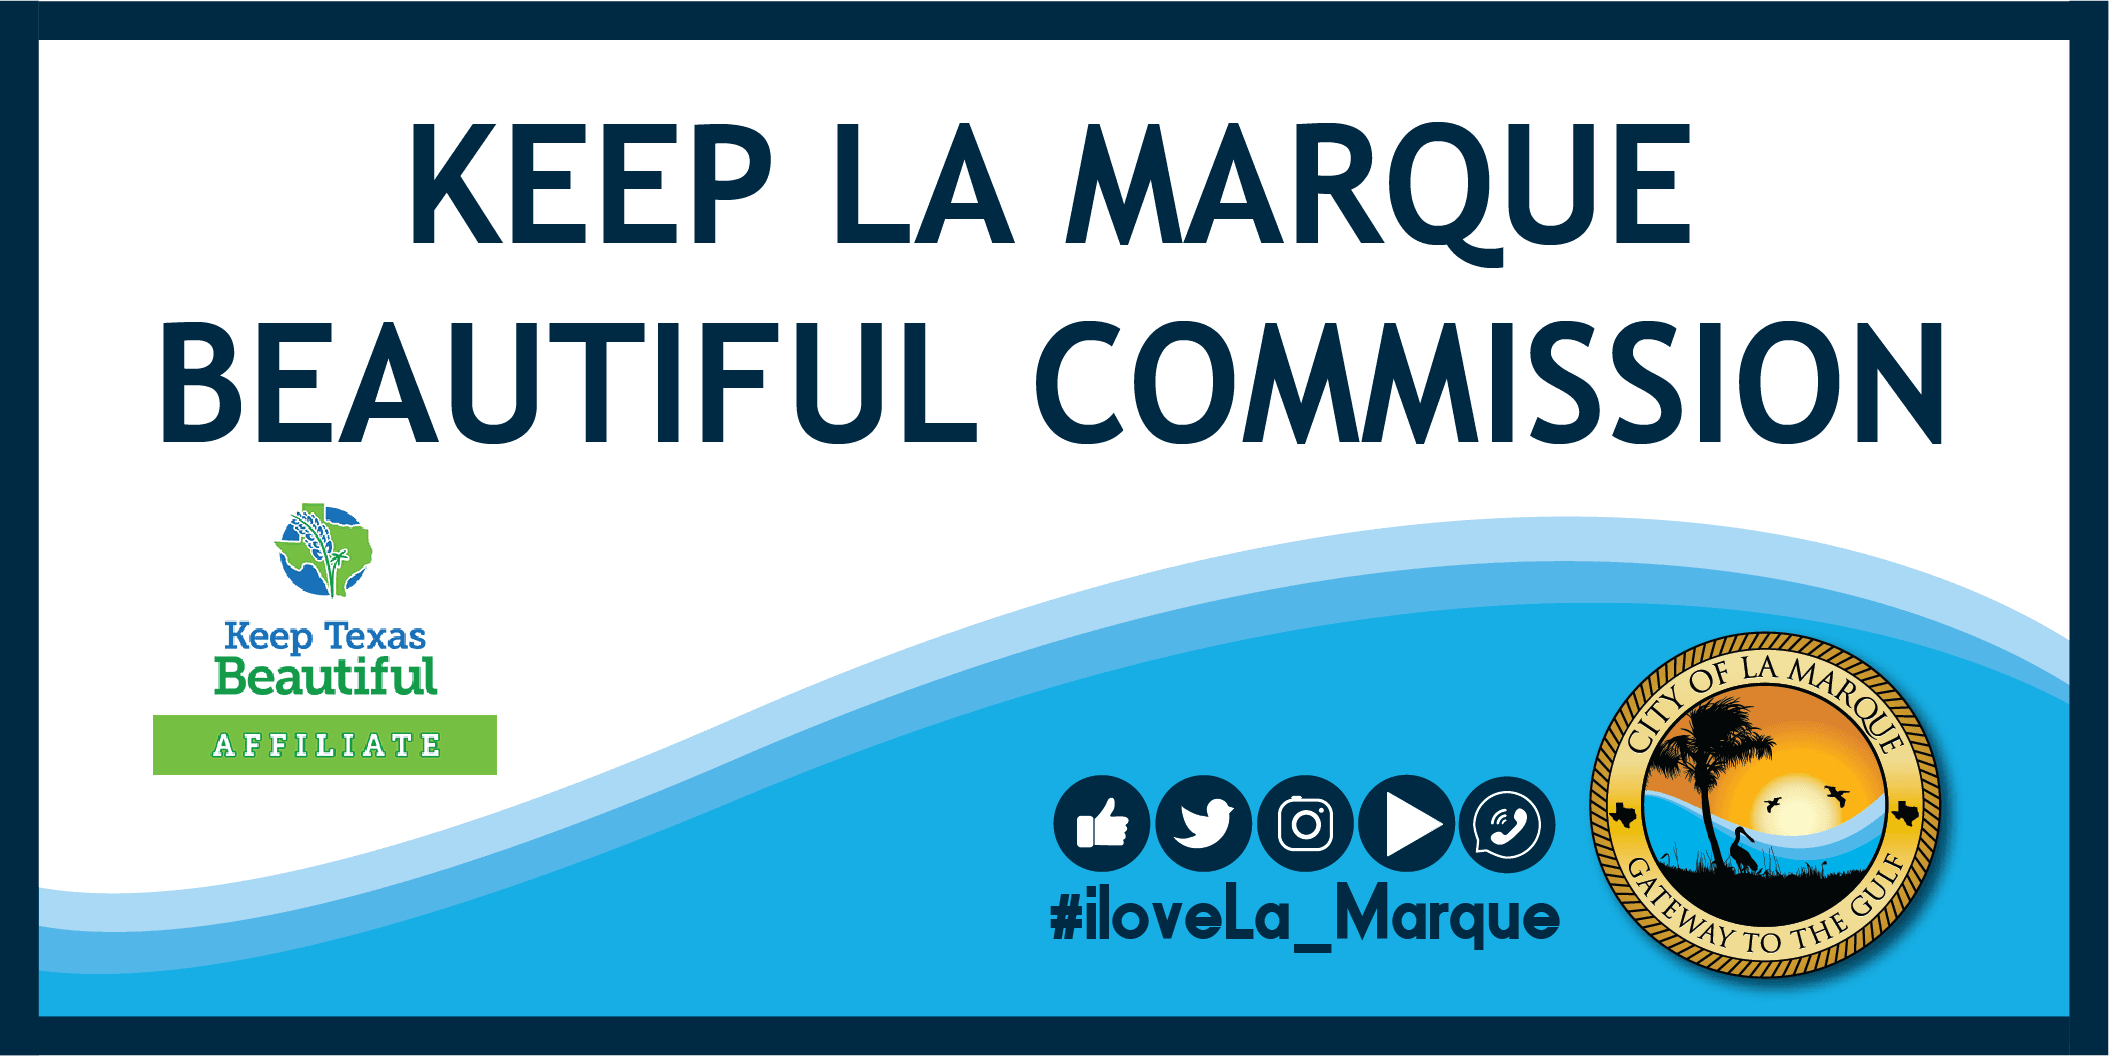 Keep LaMarque Beautiful Commission